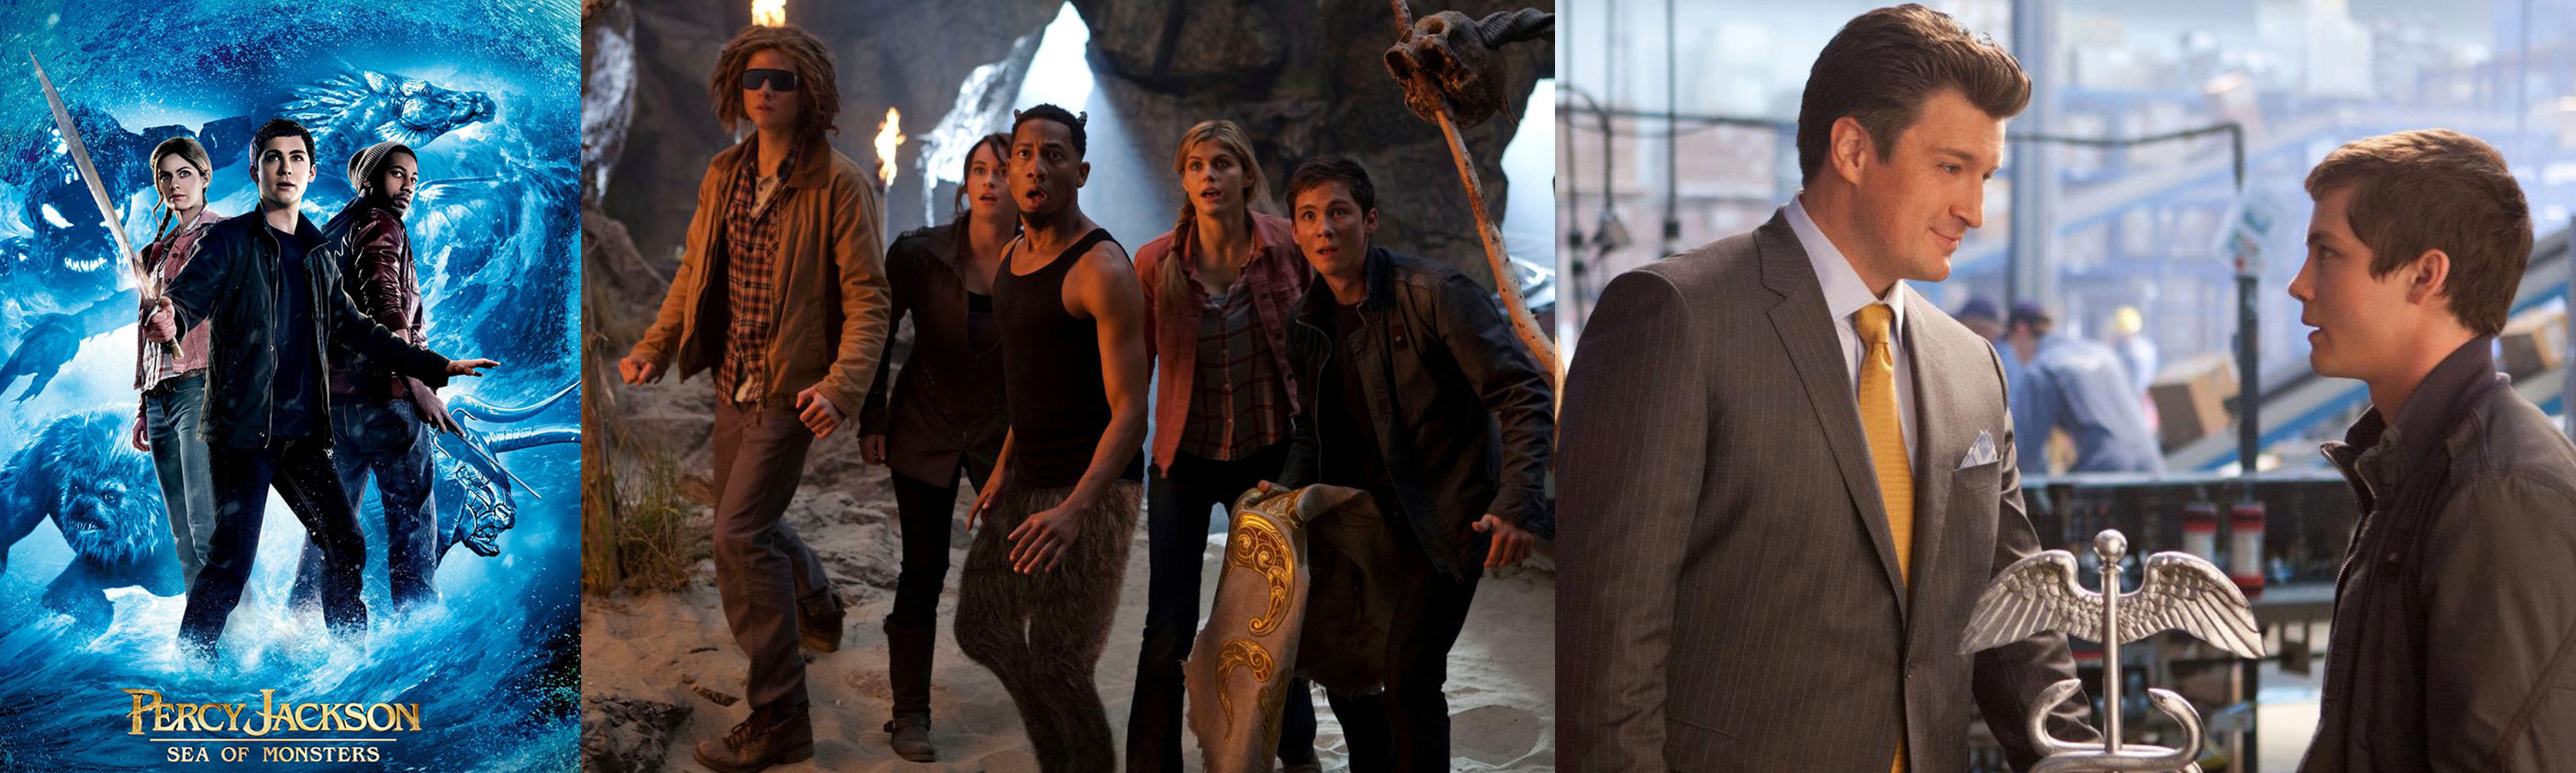 Percy Jackson Sea Of Monsters 2013 Movie Review Absolutebadasses